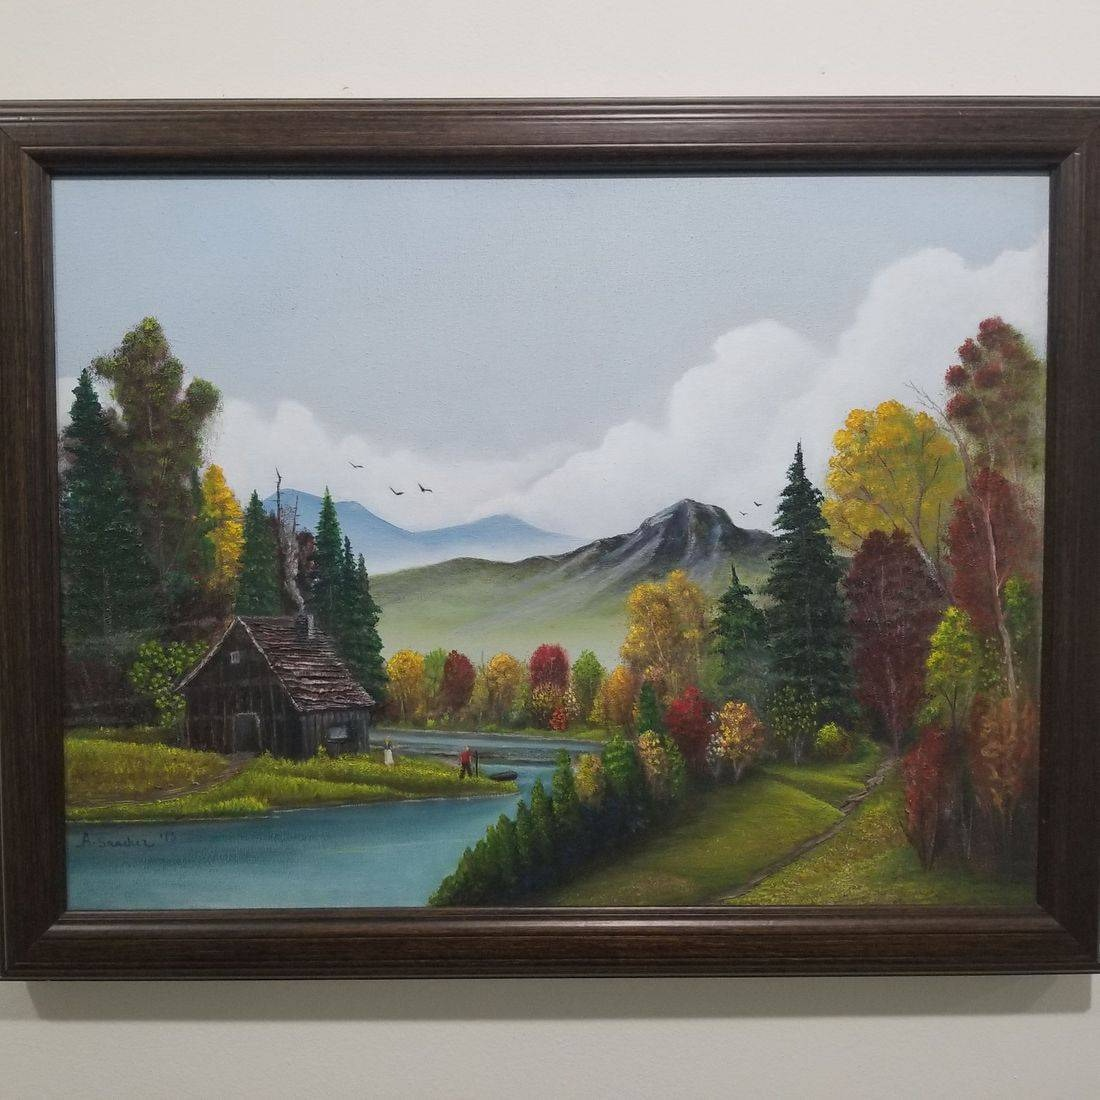 aste Full Arts Gallery Accessories 18x24 Hand Oil Painting by Local Artist (SKU: Autumn Colors)